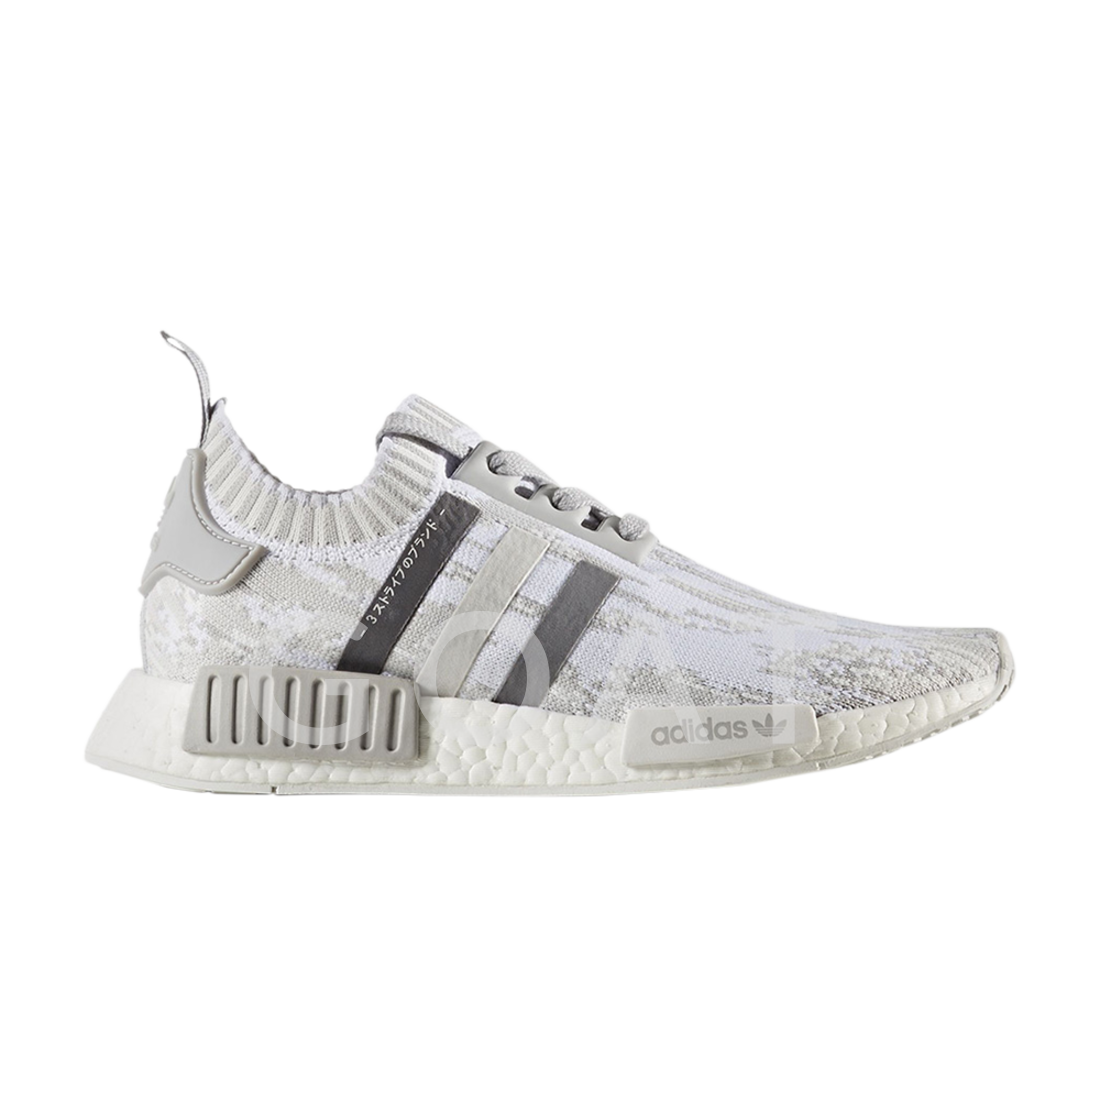 Womens Adidas NMD_R1 Primknit - BY9865 - Grey Trainers